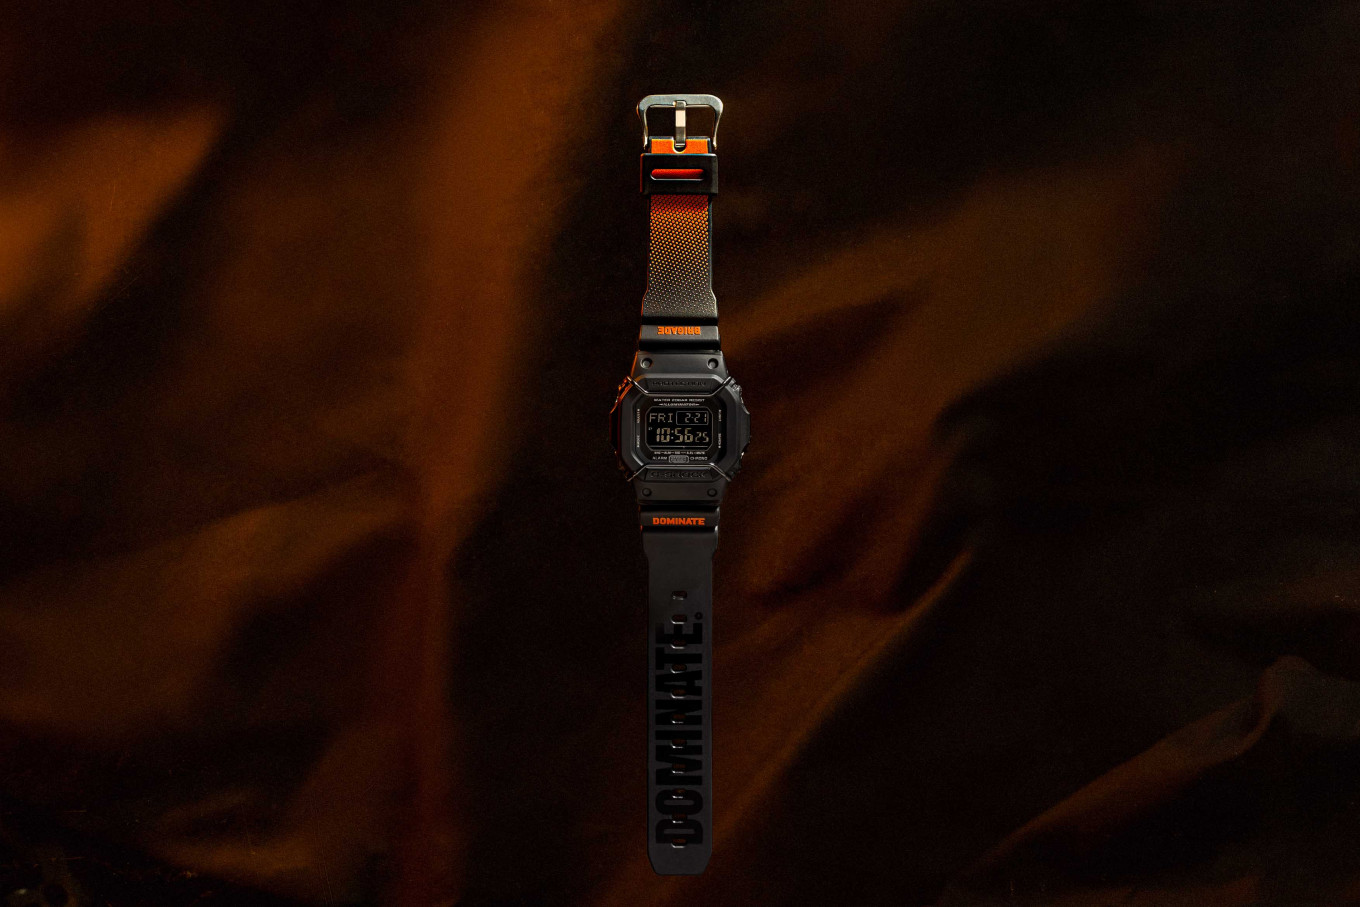 G-SHOCK teams up with Dominate for latest watch